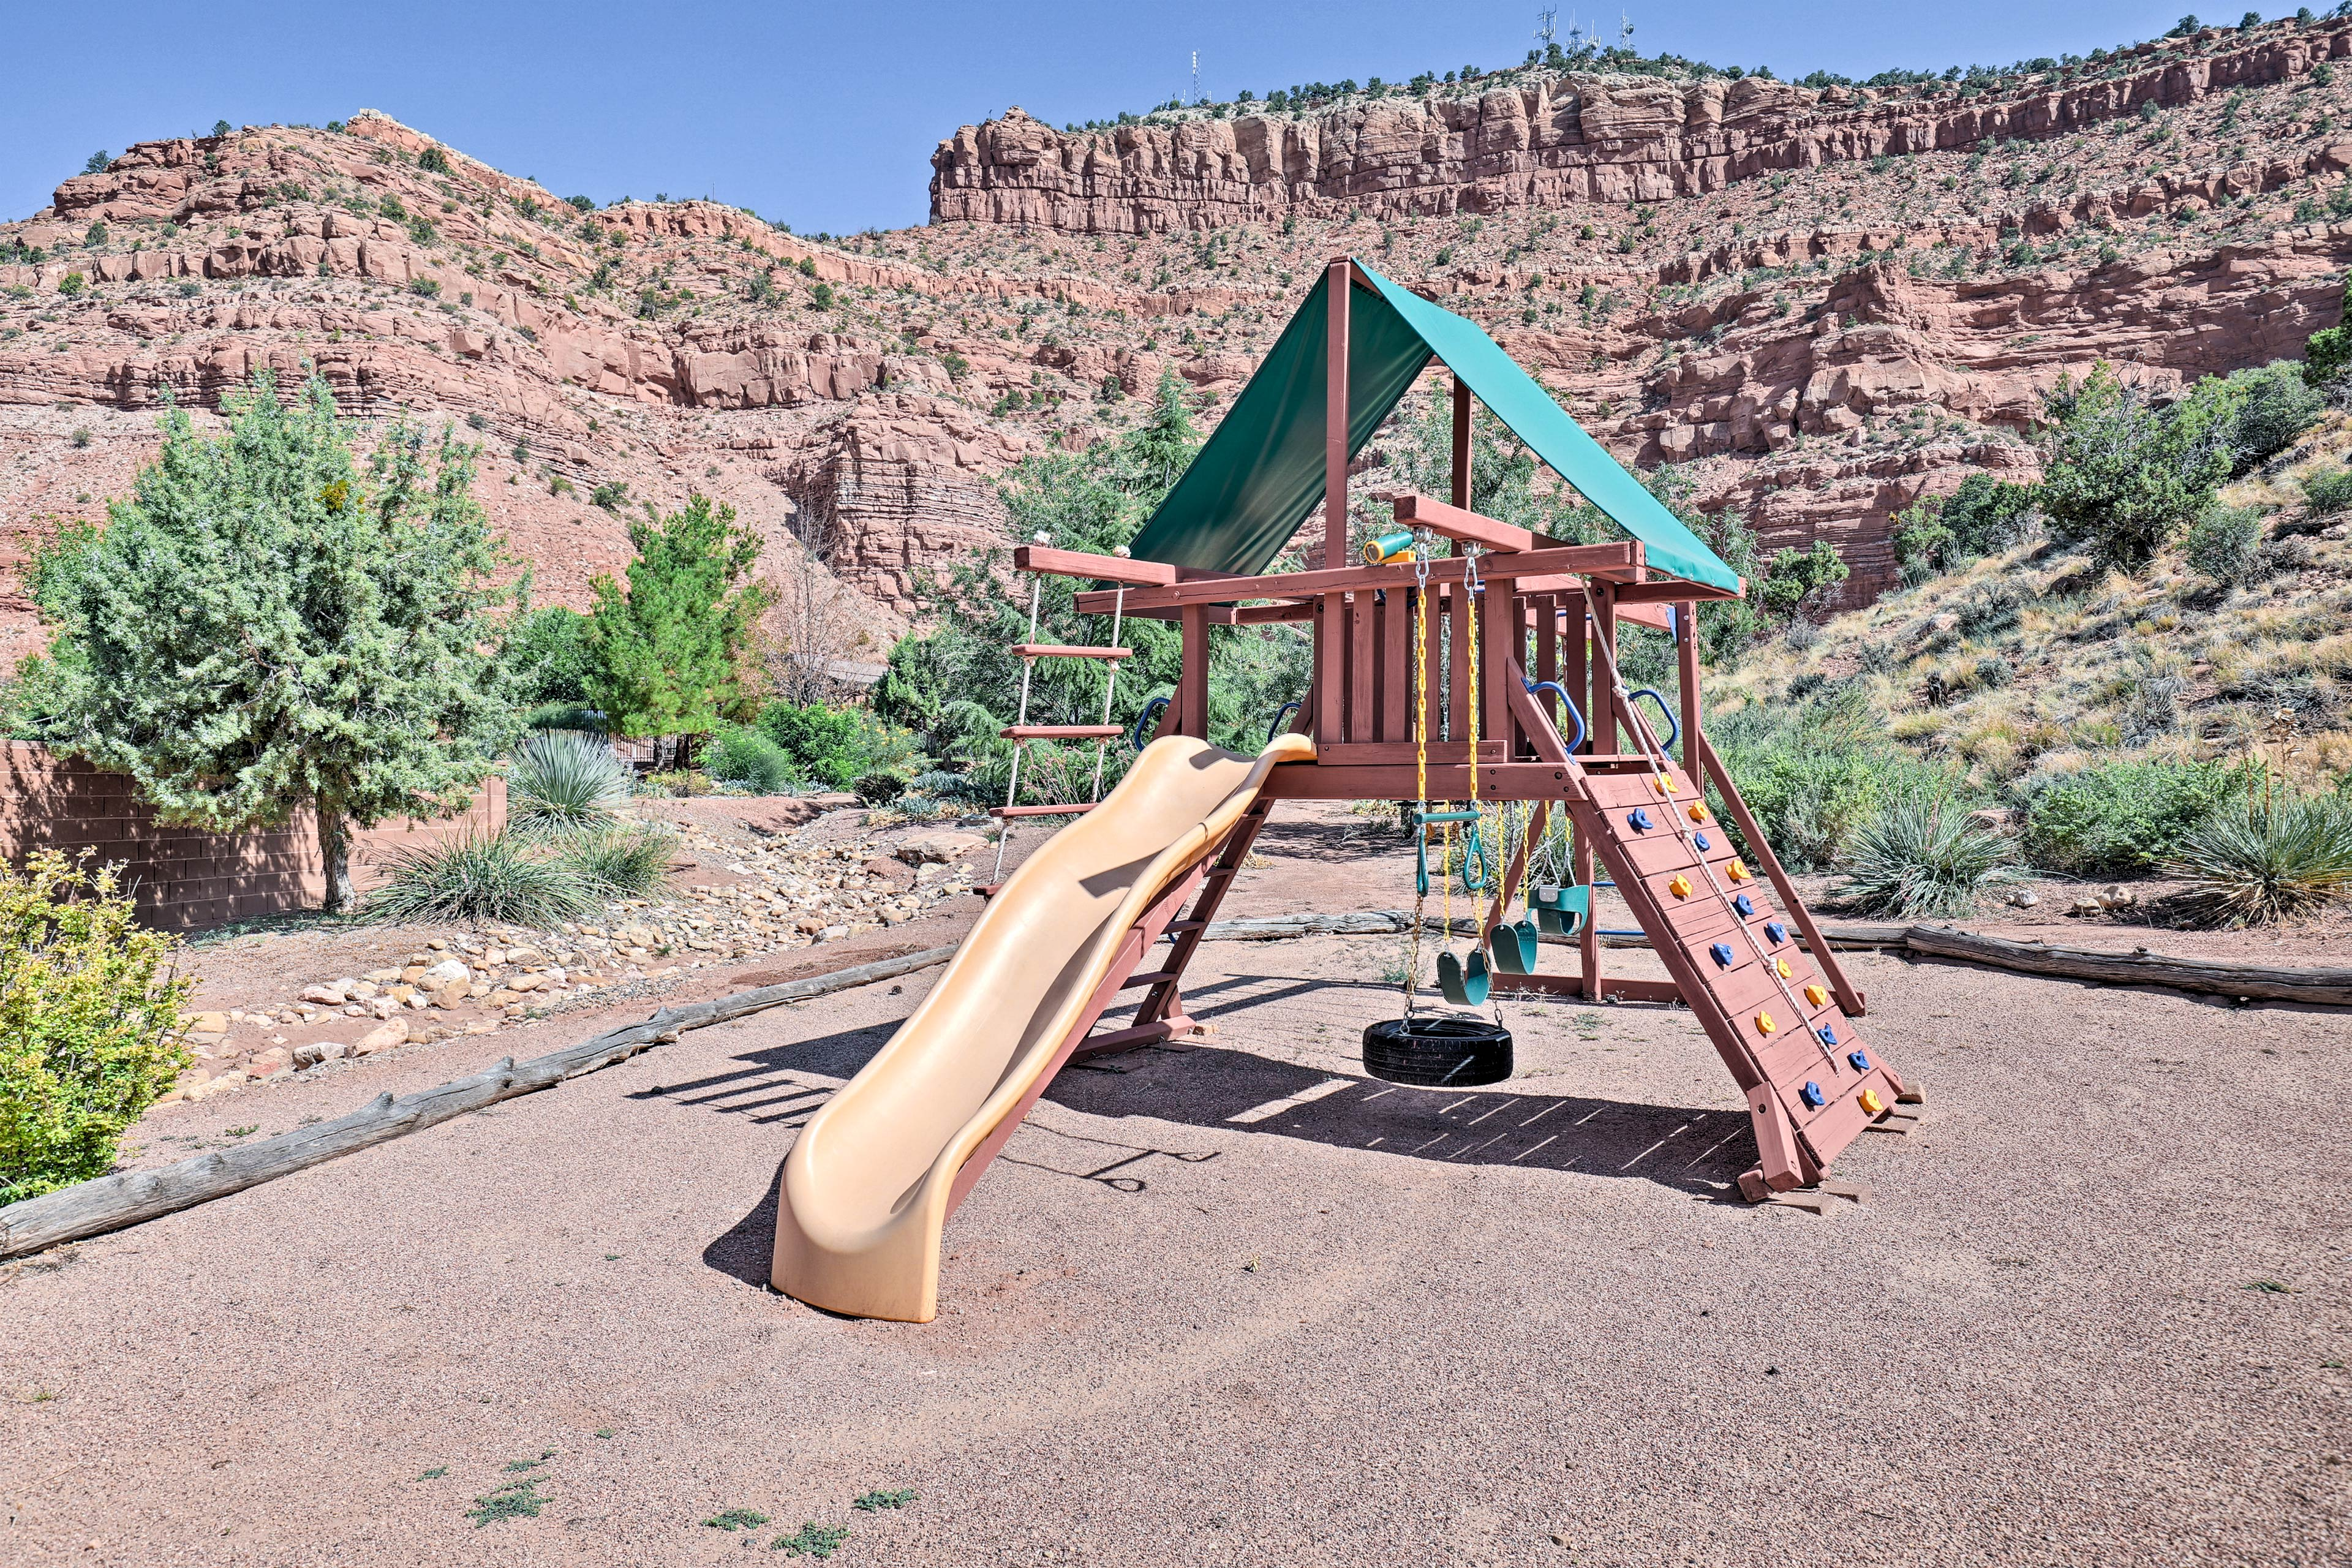 Play a game with the kids at the playground!